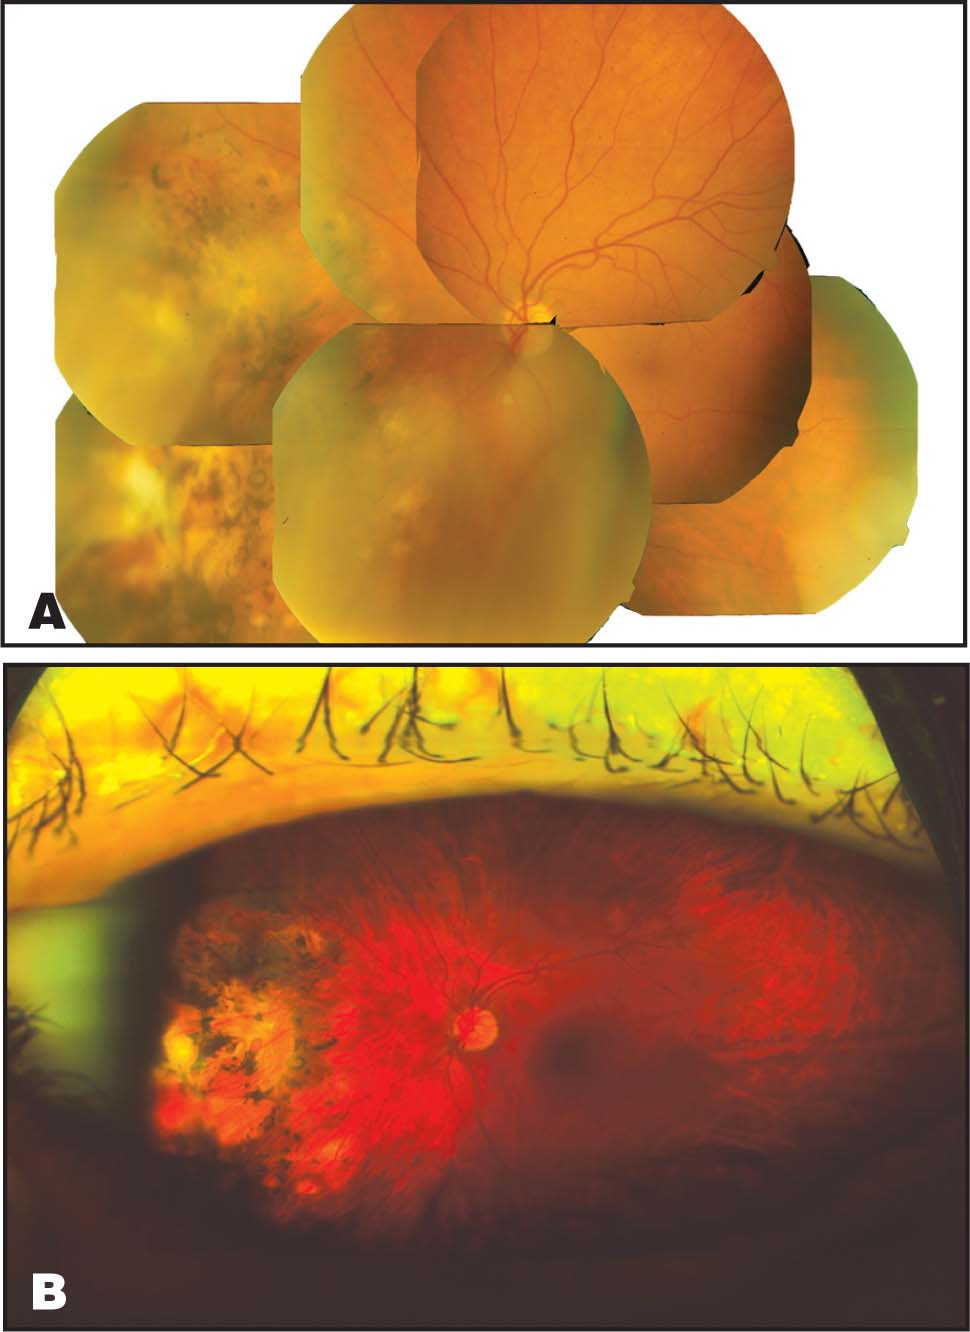 (A) Conventional Fundus Photography with Montage. (B) Optomap (Optos PLC, Dunfermline, Scotland) Ultra-Wide–Field Imaging of the Same Patient.